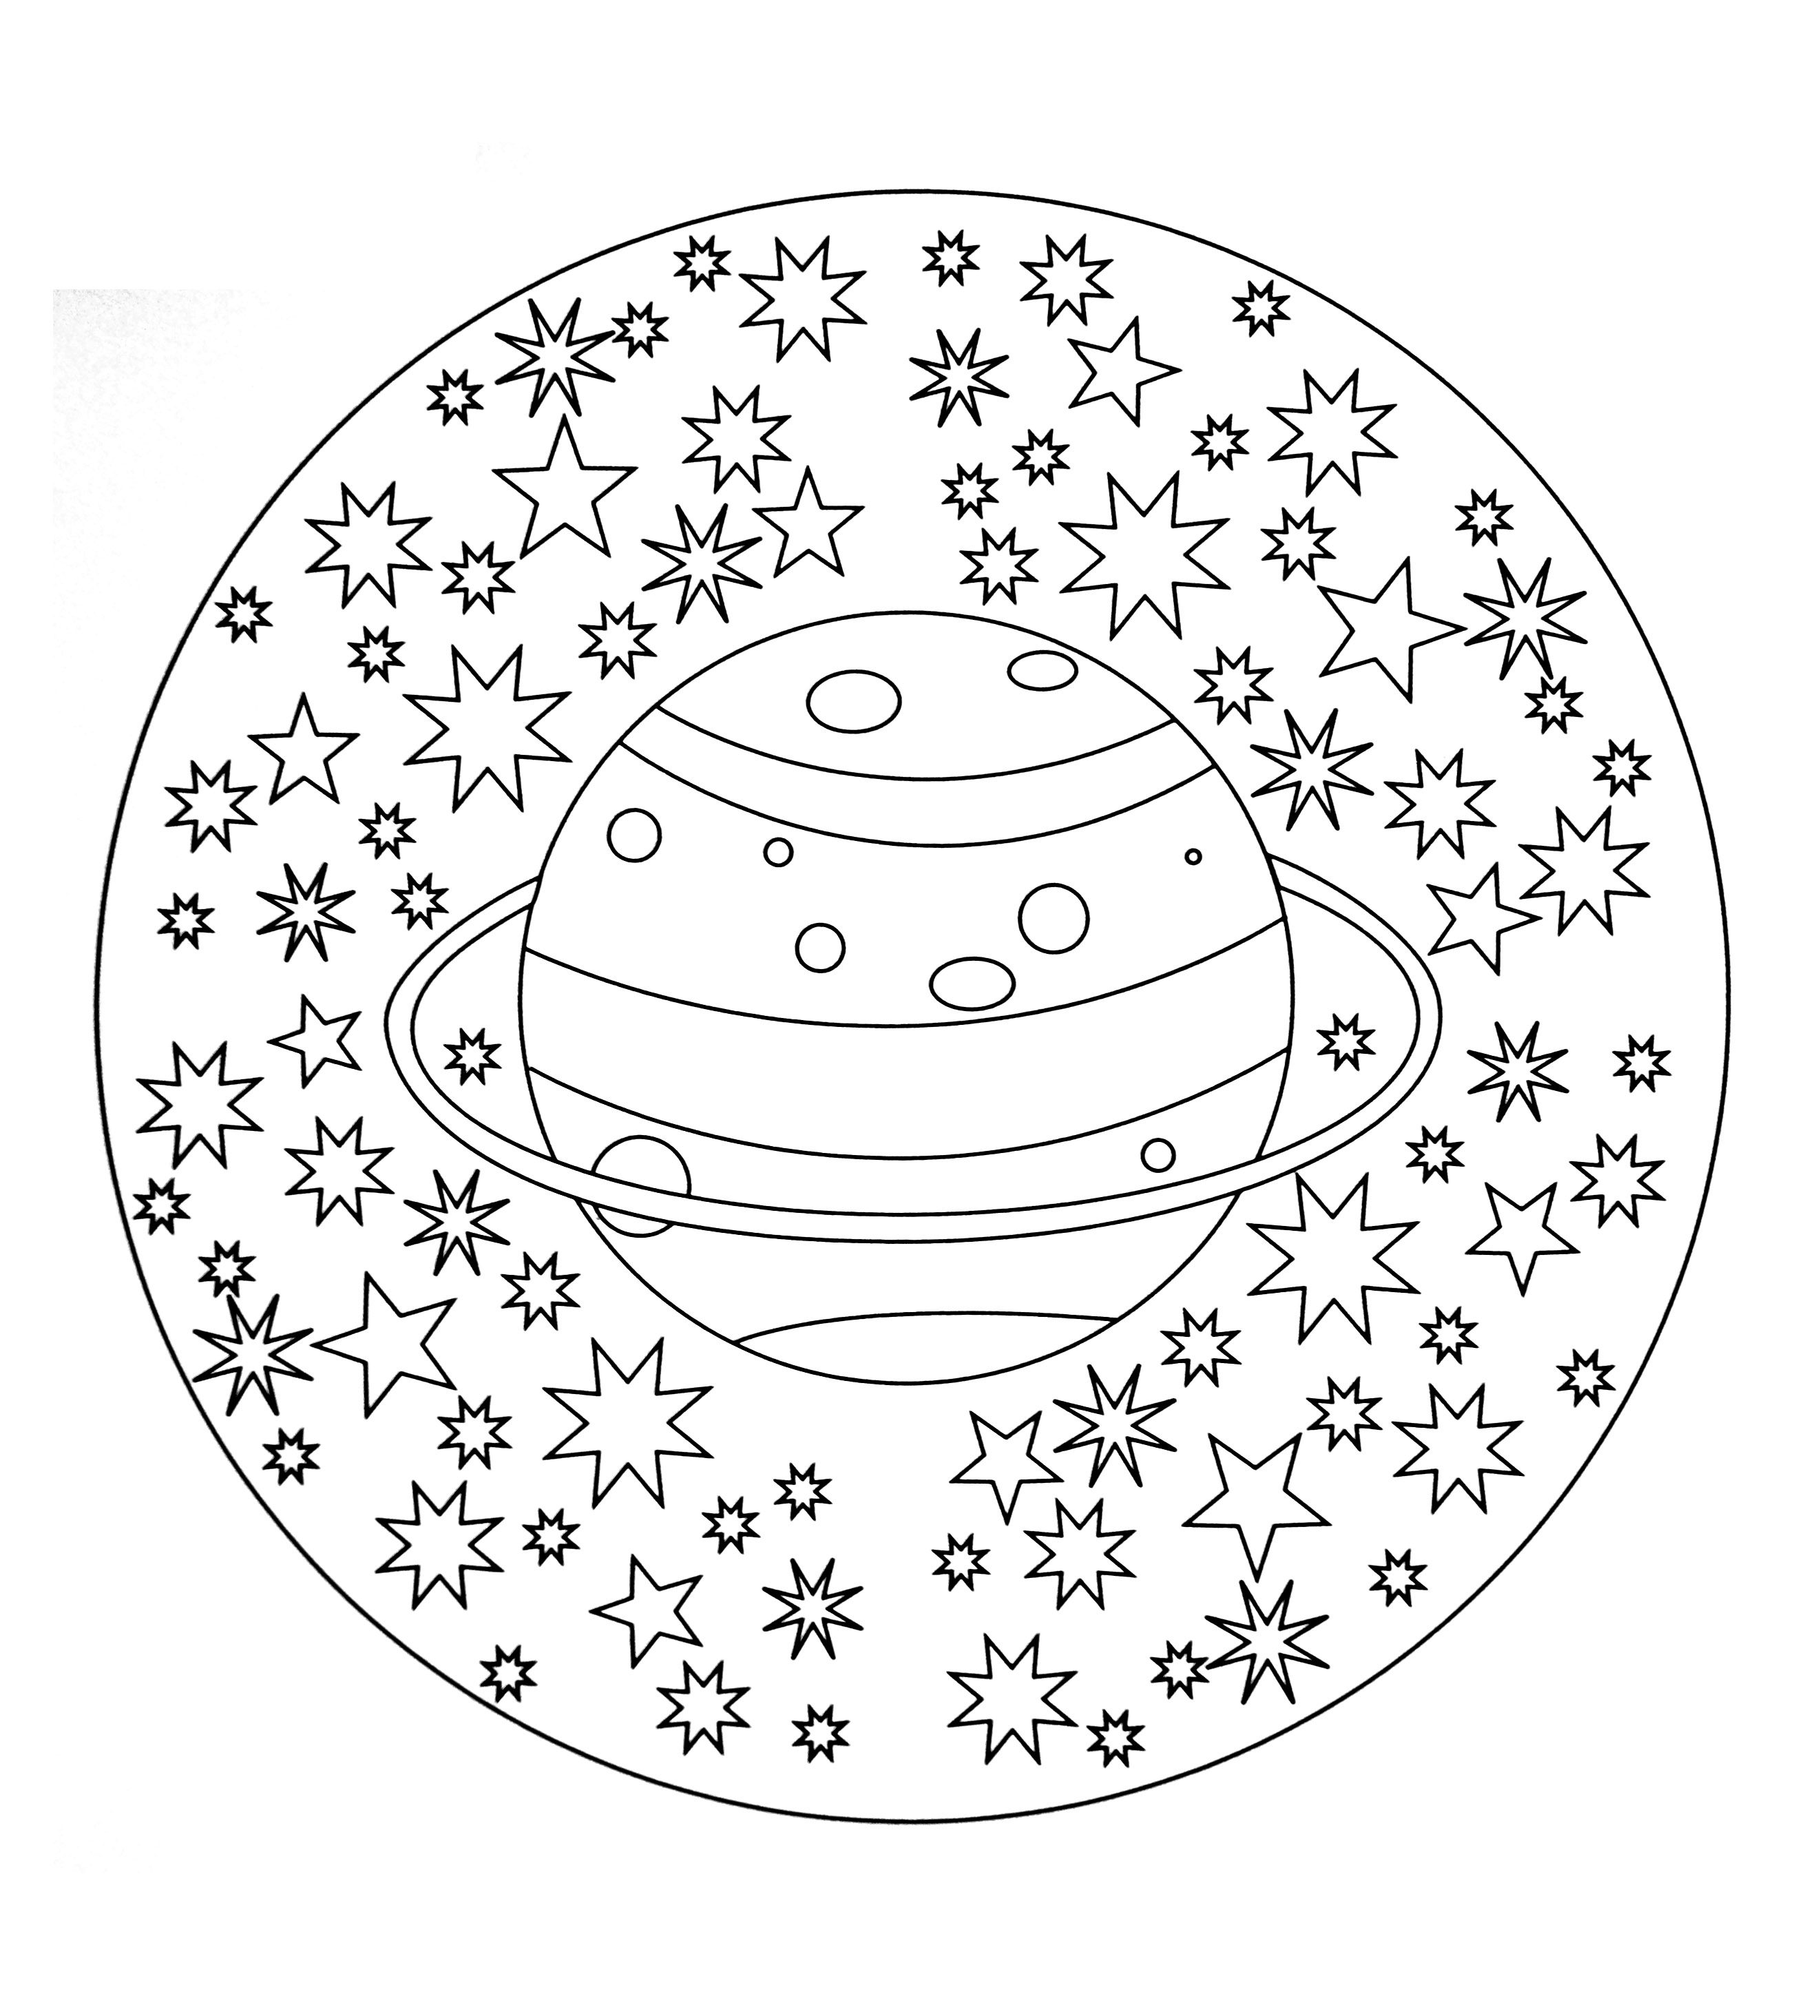 Mandalas Coloring pages for kids to print color